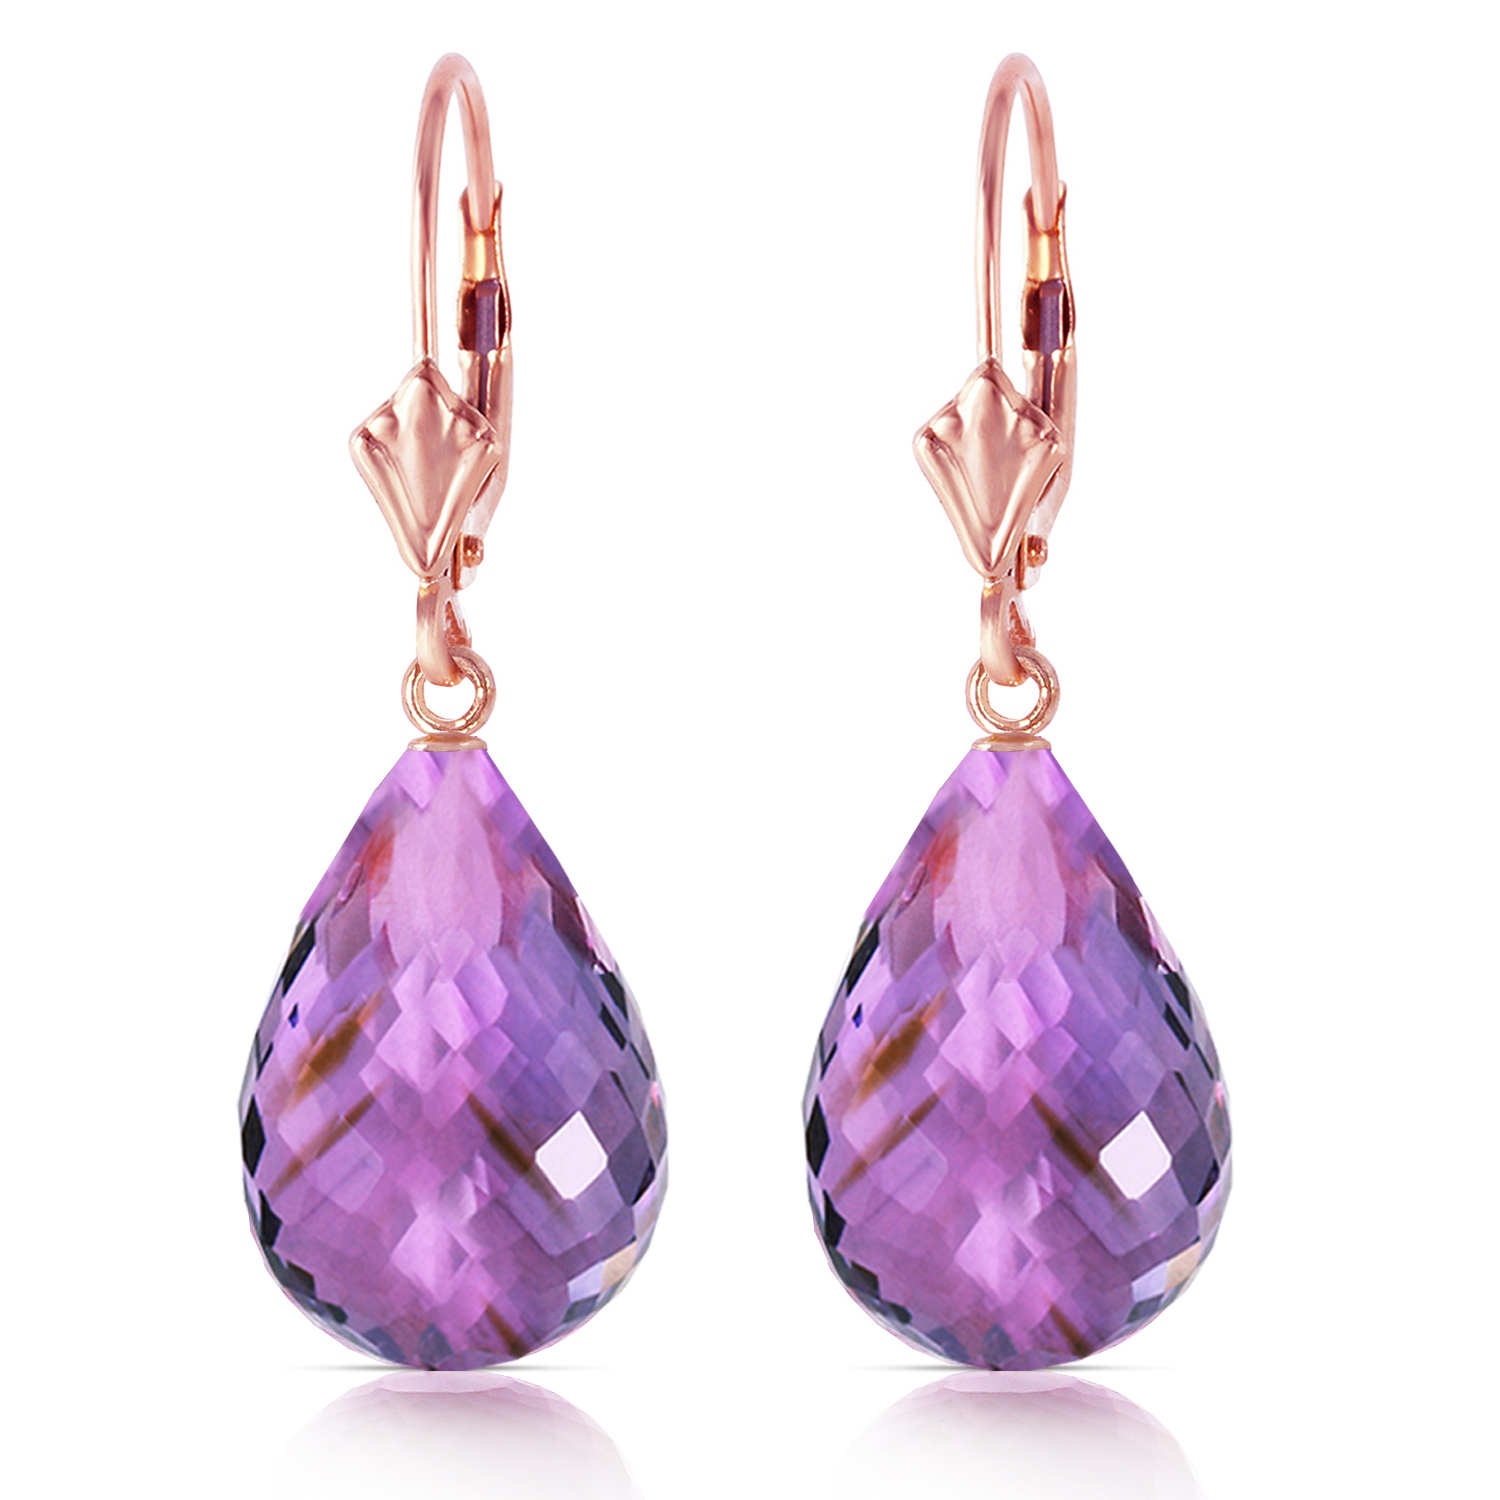 Primary image for 14 Carat 14K Solid Rose Gold Amethyst Briolette Swing Earrings